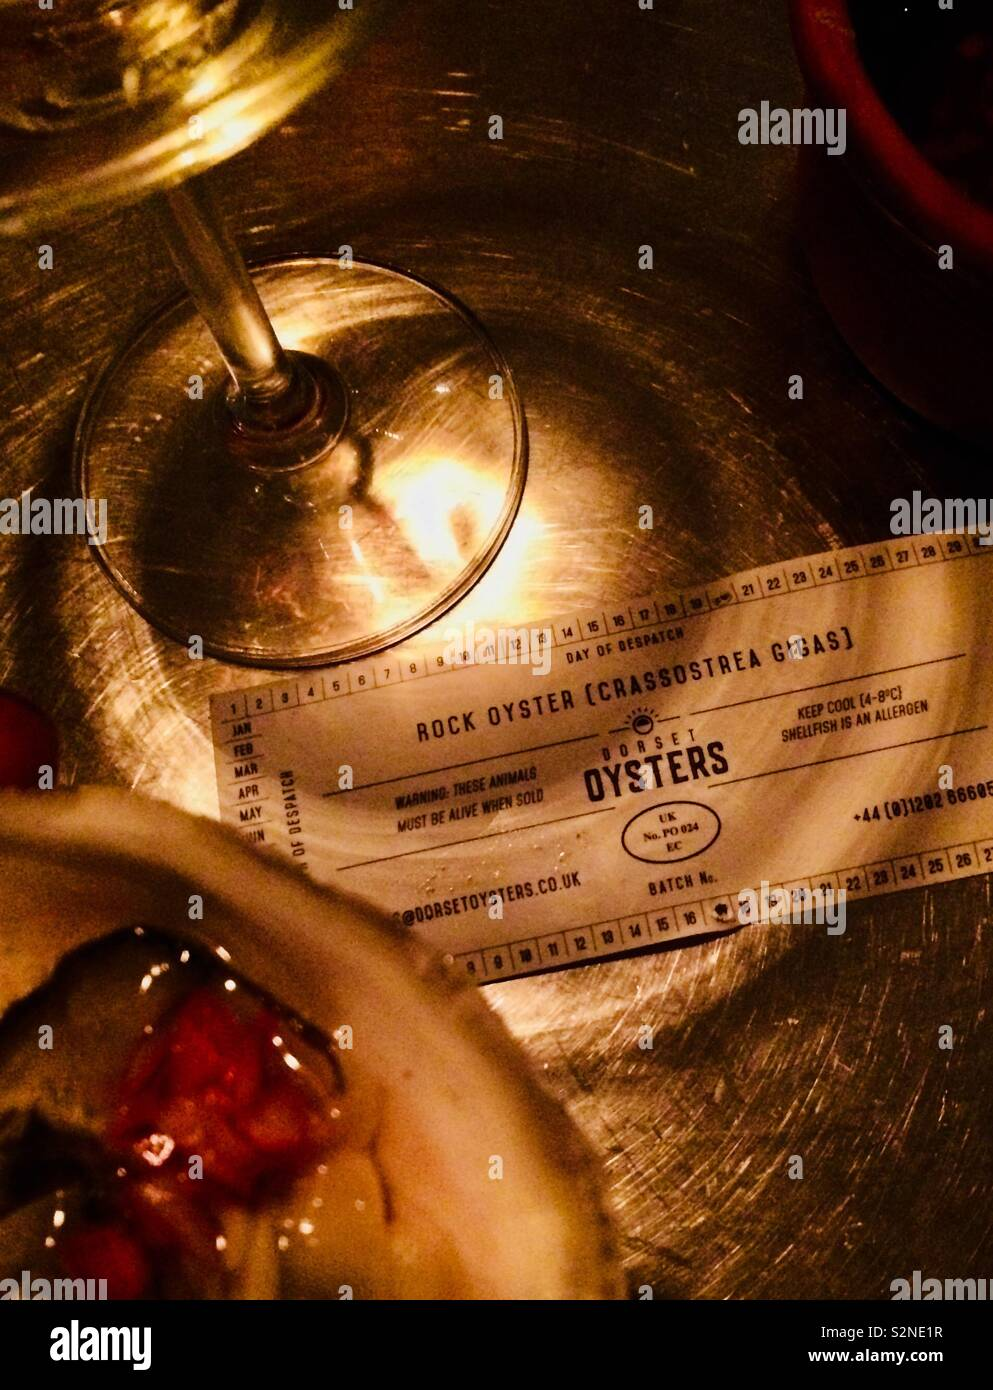 Oysters and champagne with provenance - Stock Image